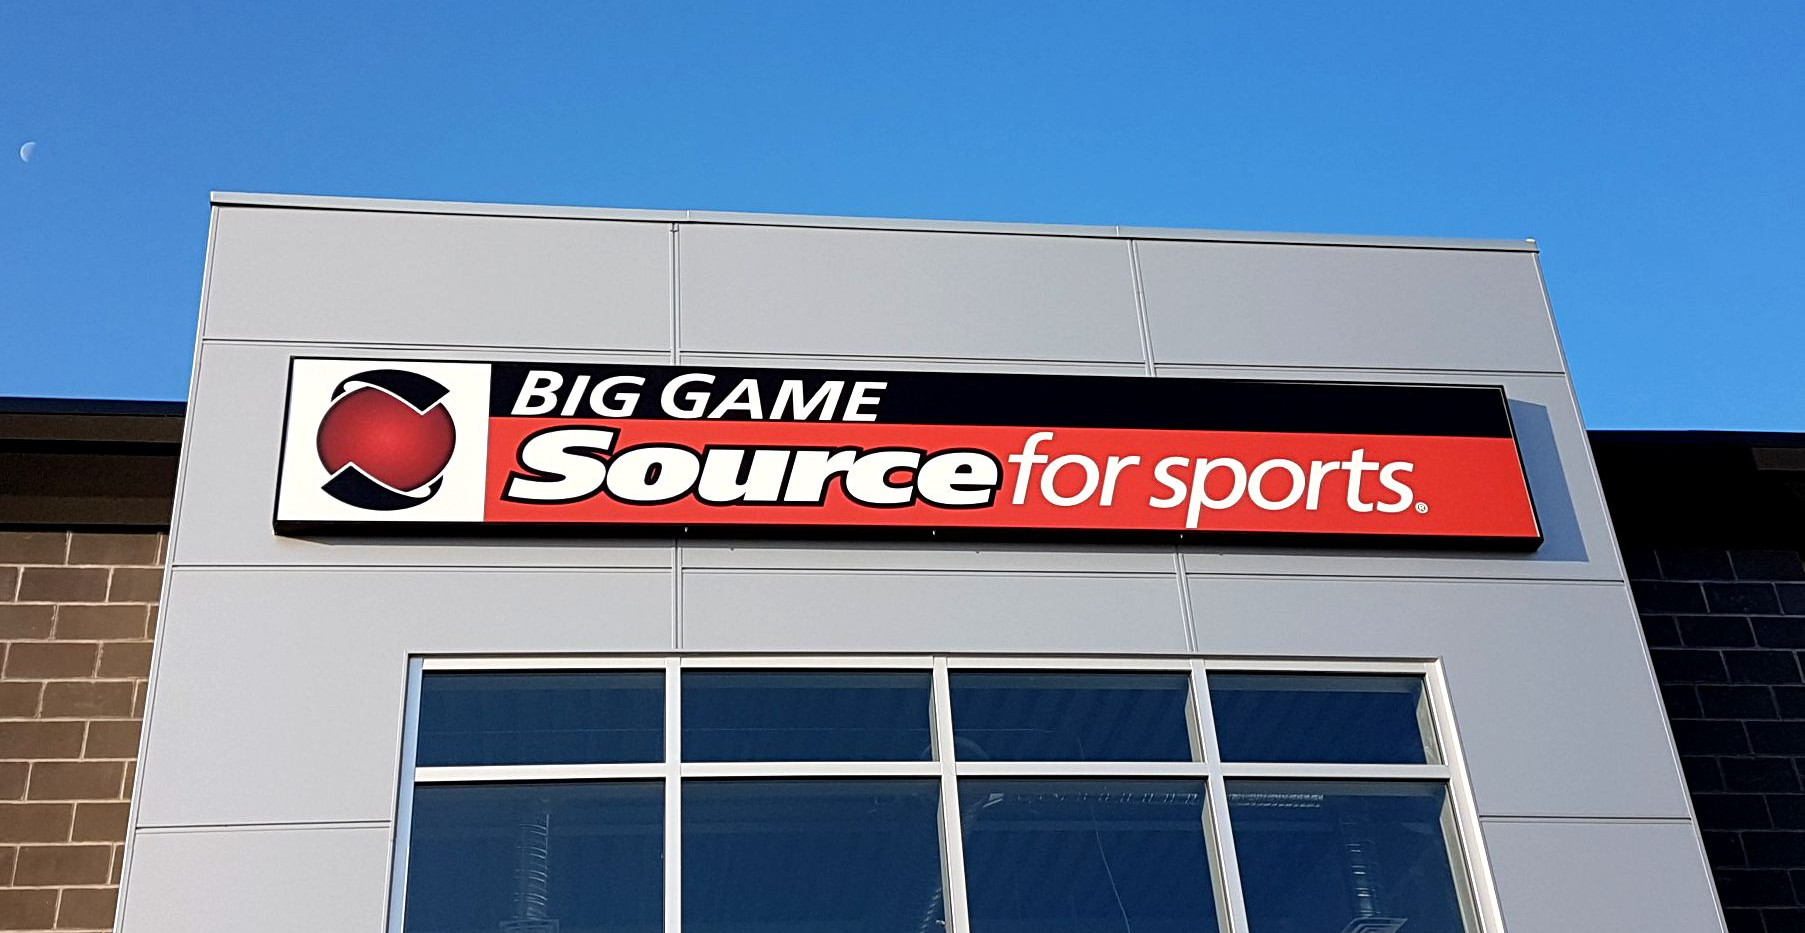 Big Game Source for Sports After Install